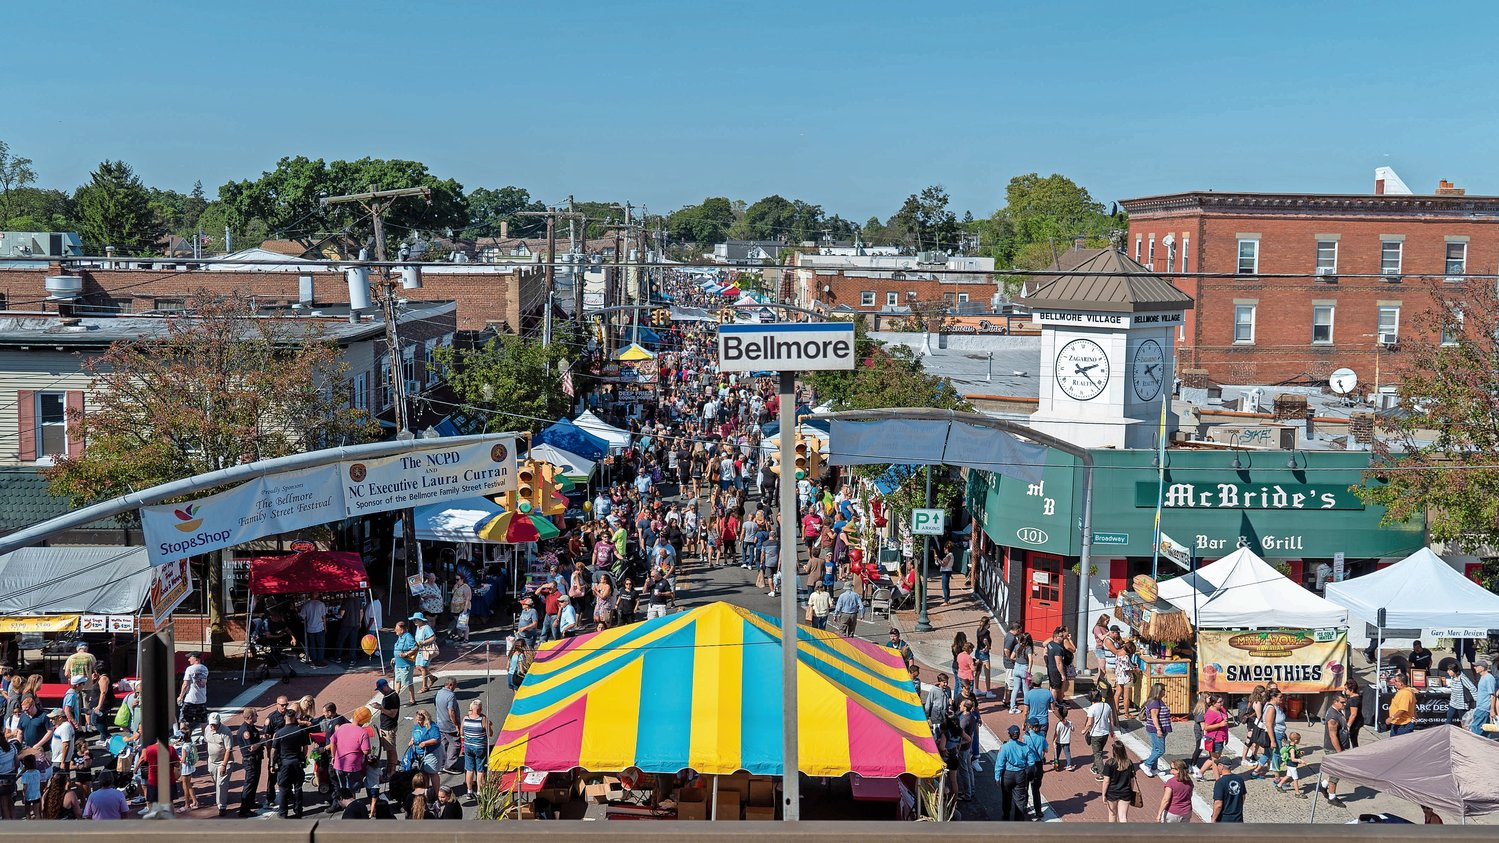 The Bellmore Street Festival, which attracts thousands of visitors to the hamlet every September, has been postponed until 2021 due to the coronavirus pandemic.